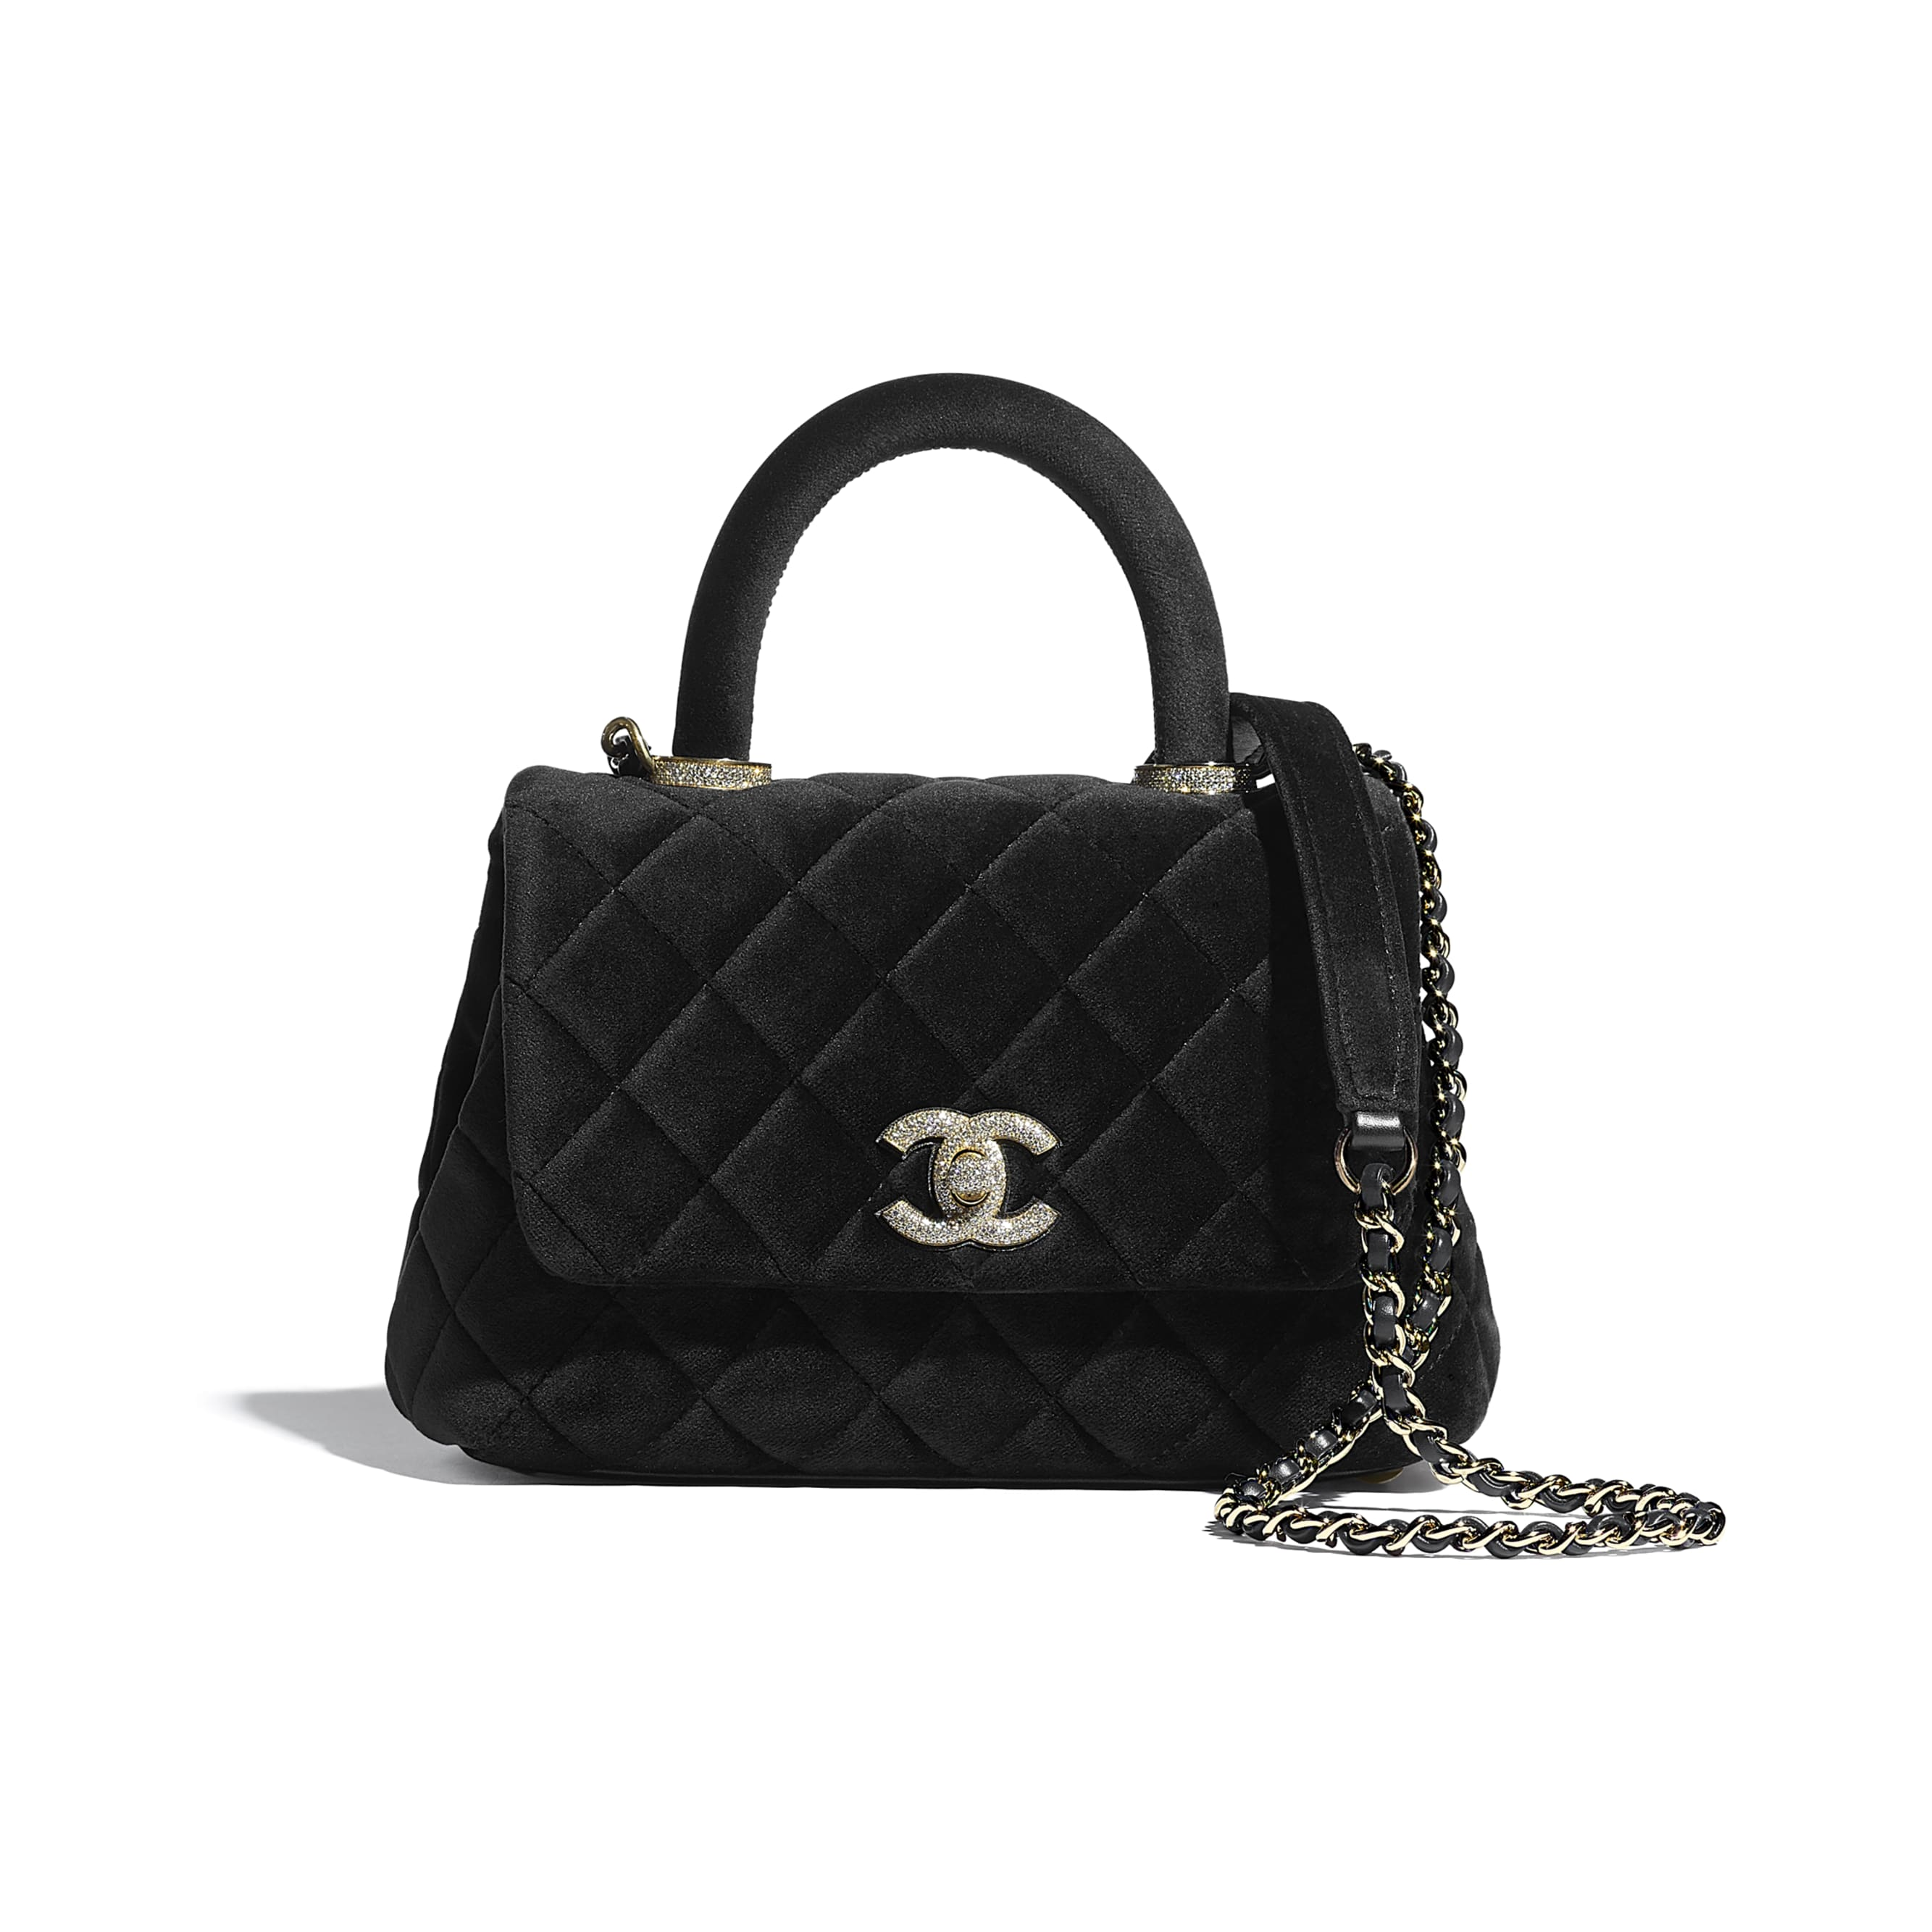 Mini Flap Bag with Top Handle - Black - Velvet, Diamanté & Gold-Tone Metal - CHANEL - Default view - see standard sized version